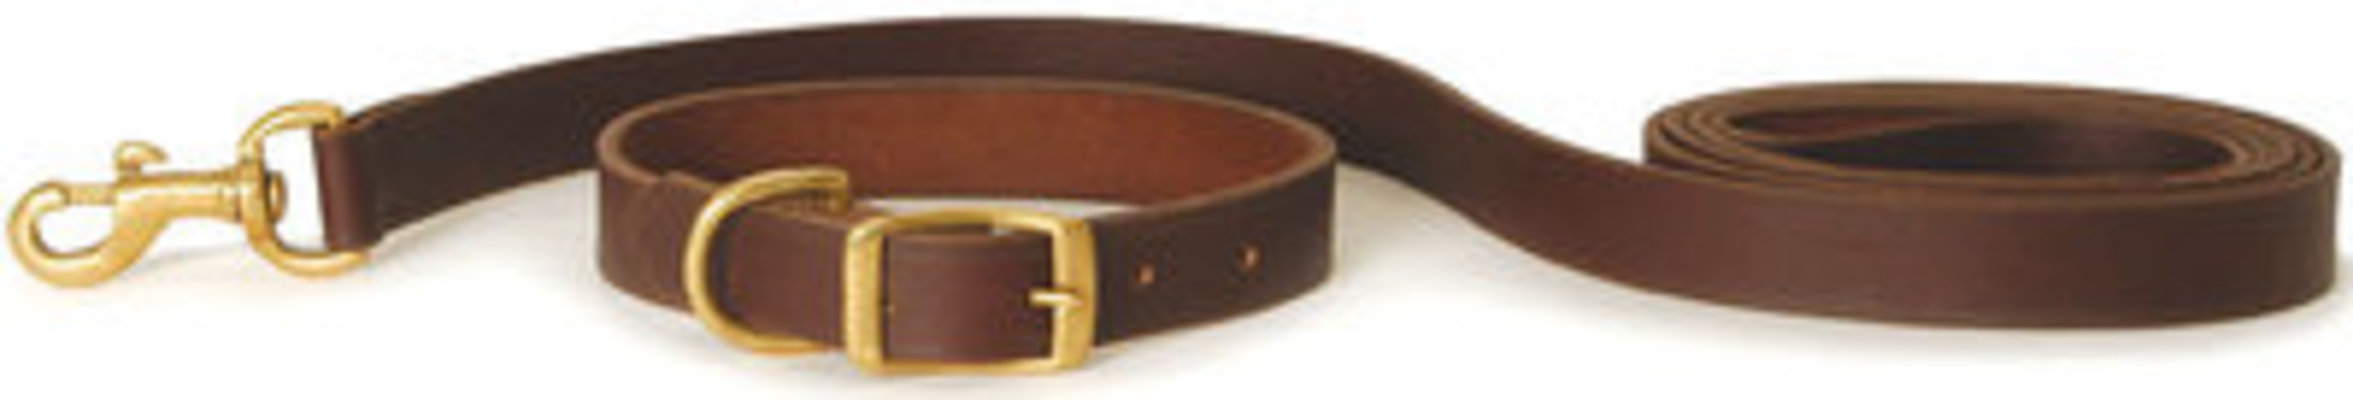 "6' Flat Leather Leash, 5/8"" W"